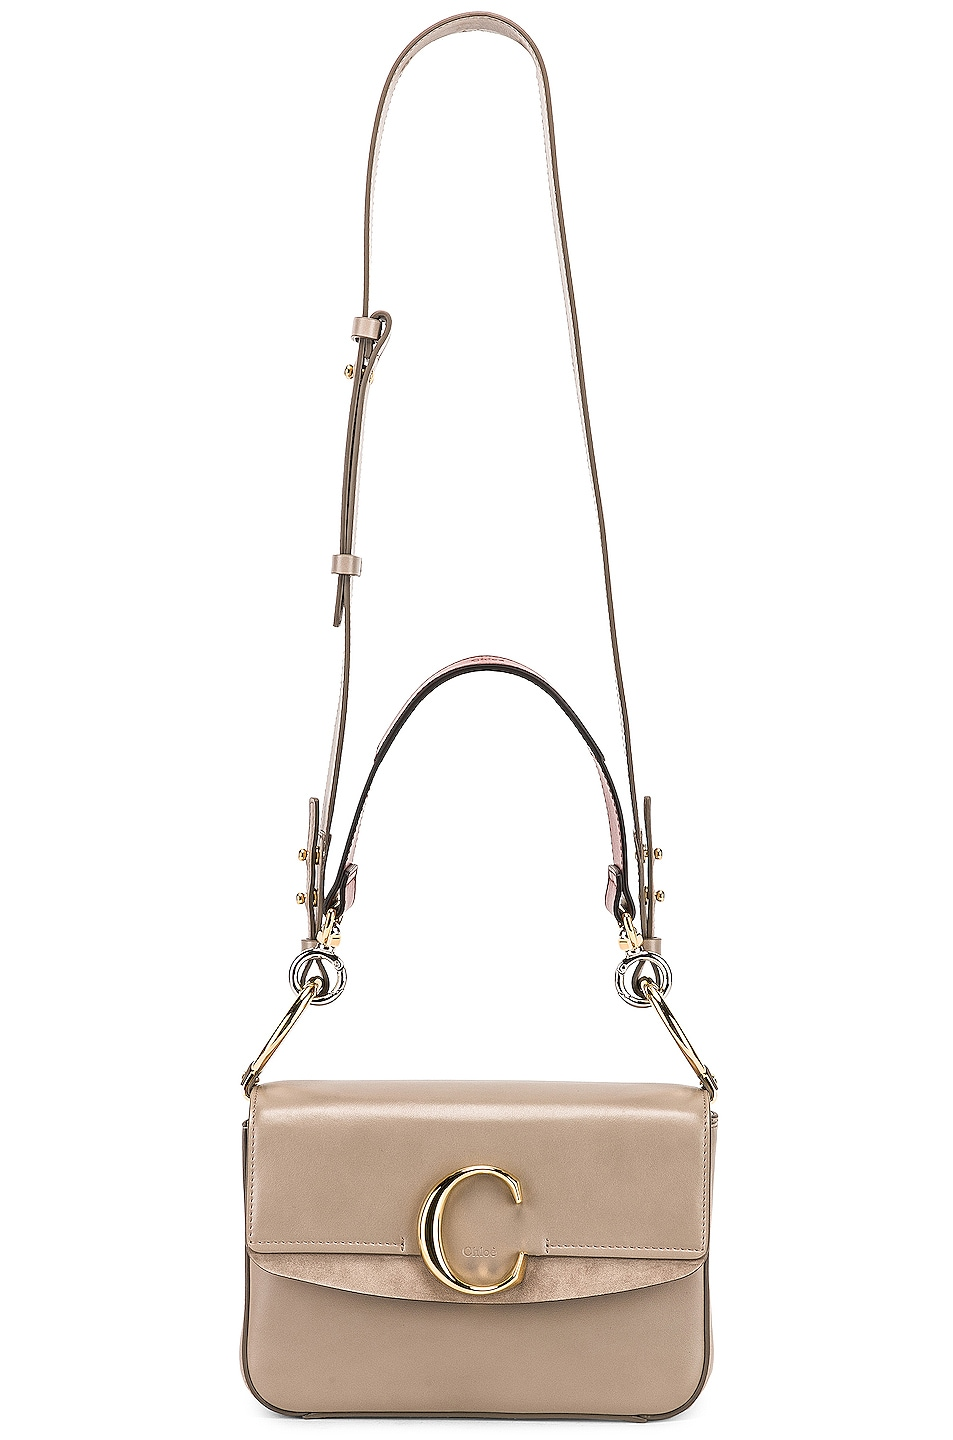 Image 6 of Chloe Chloe C Small Suede-Trimmed Leather Shoulder Bag in Motty Grey